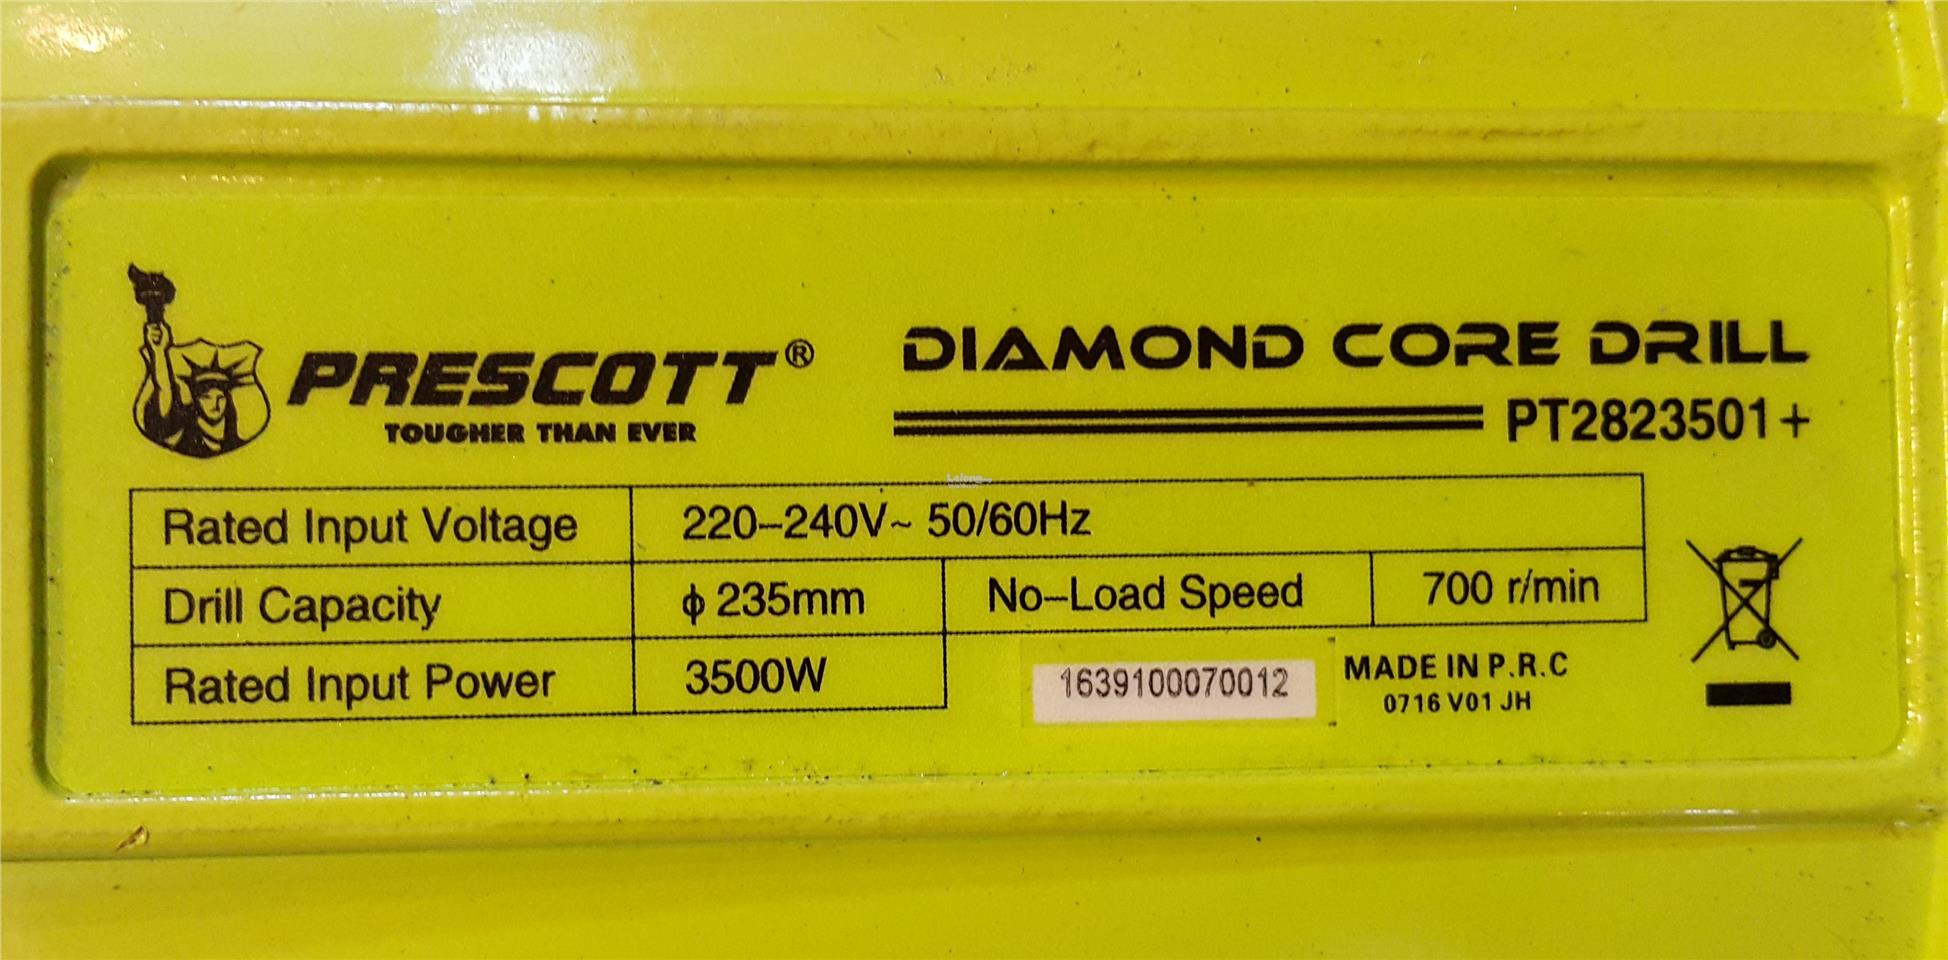 Prescott Diamond Core Drill 3500w ID119441